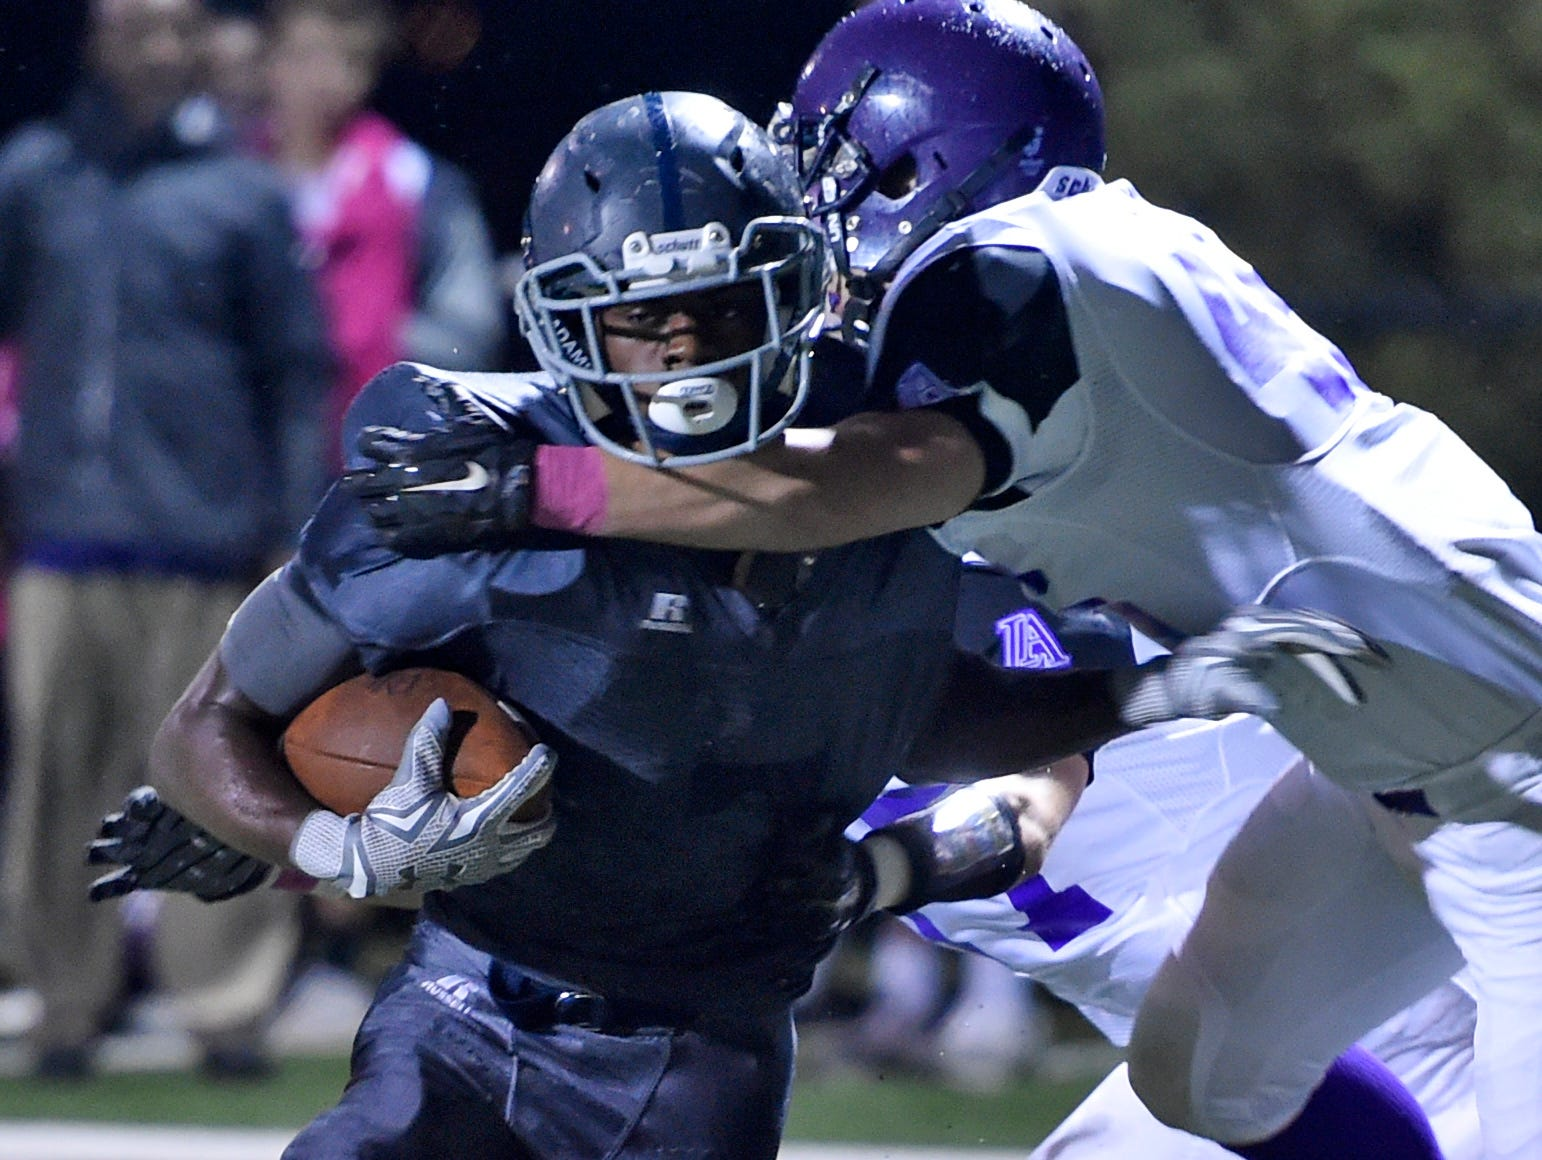 Franklin Road Academy running back Sam Harvin (3) powers past a Lipscomb defender during their game.